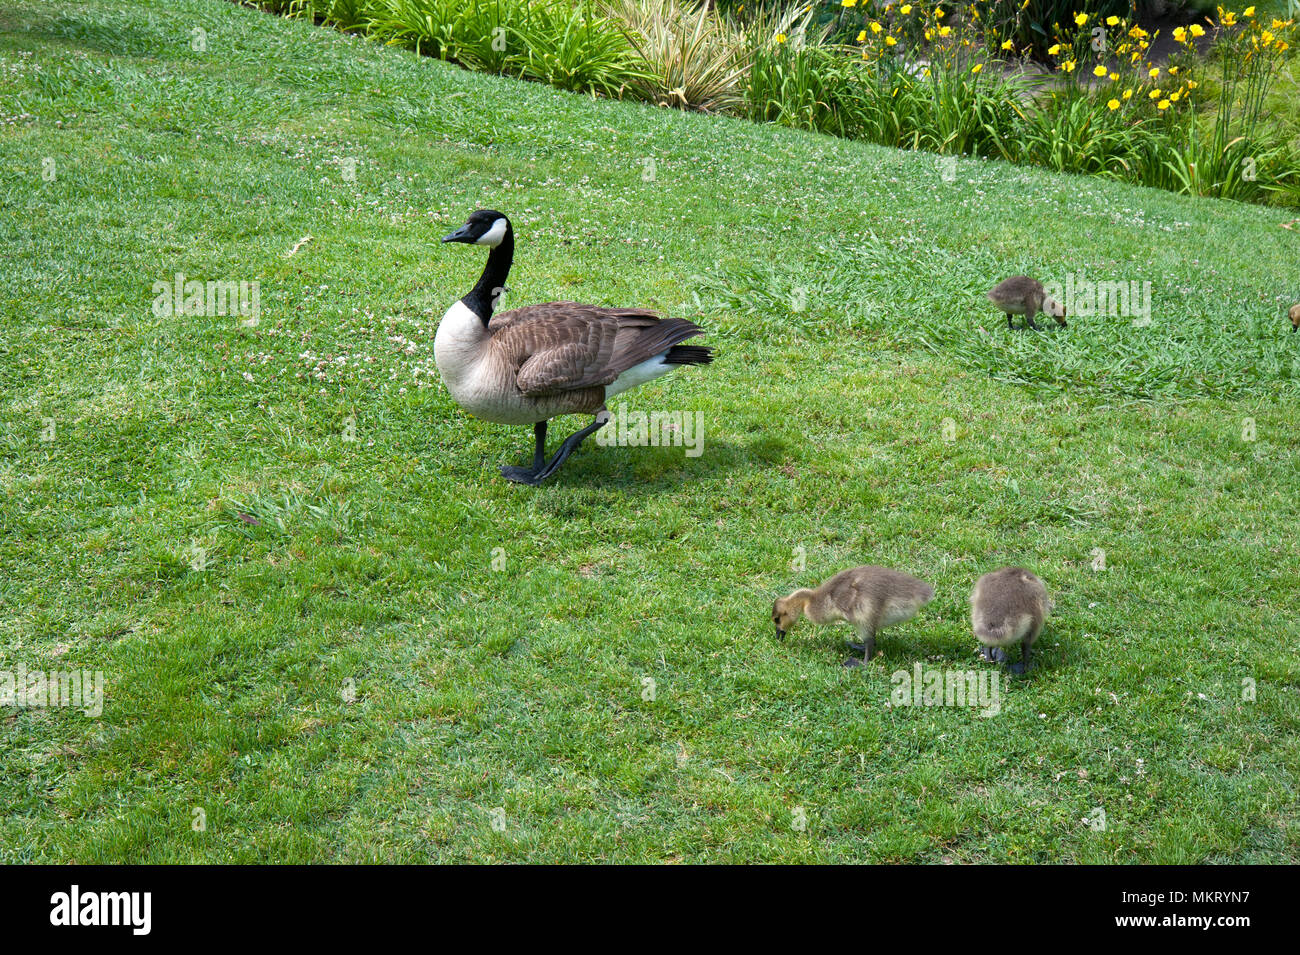 Mother goose and baby geese on lawn at the Huntington Gardens, in Pasadena, CA - Stock Image